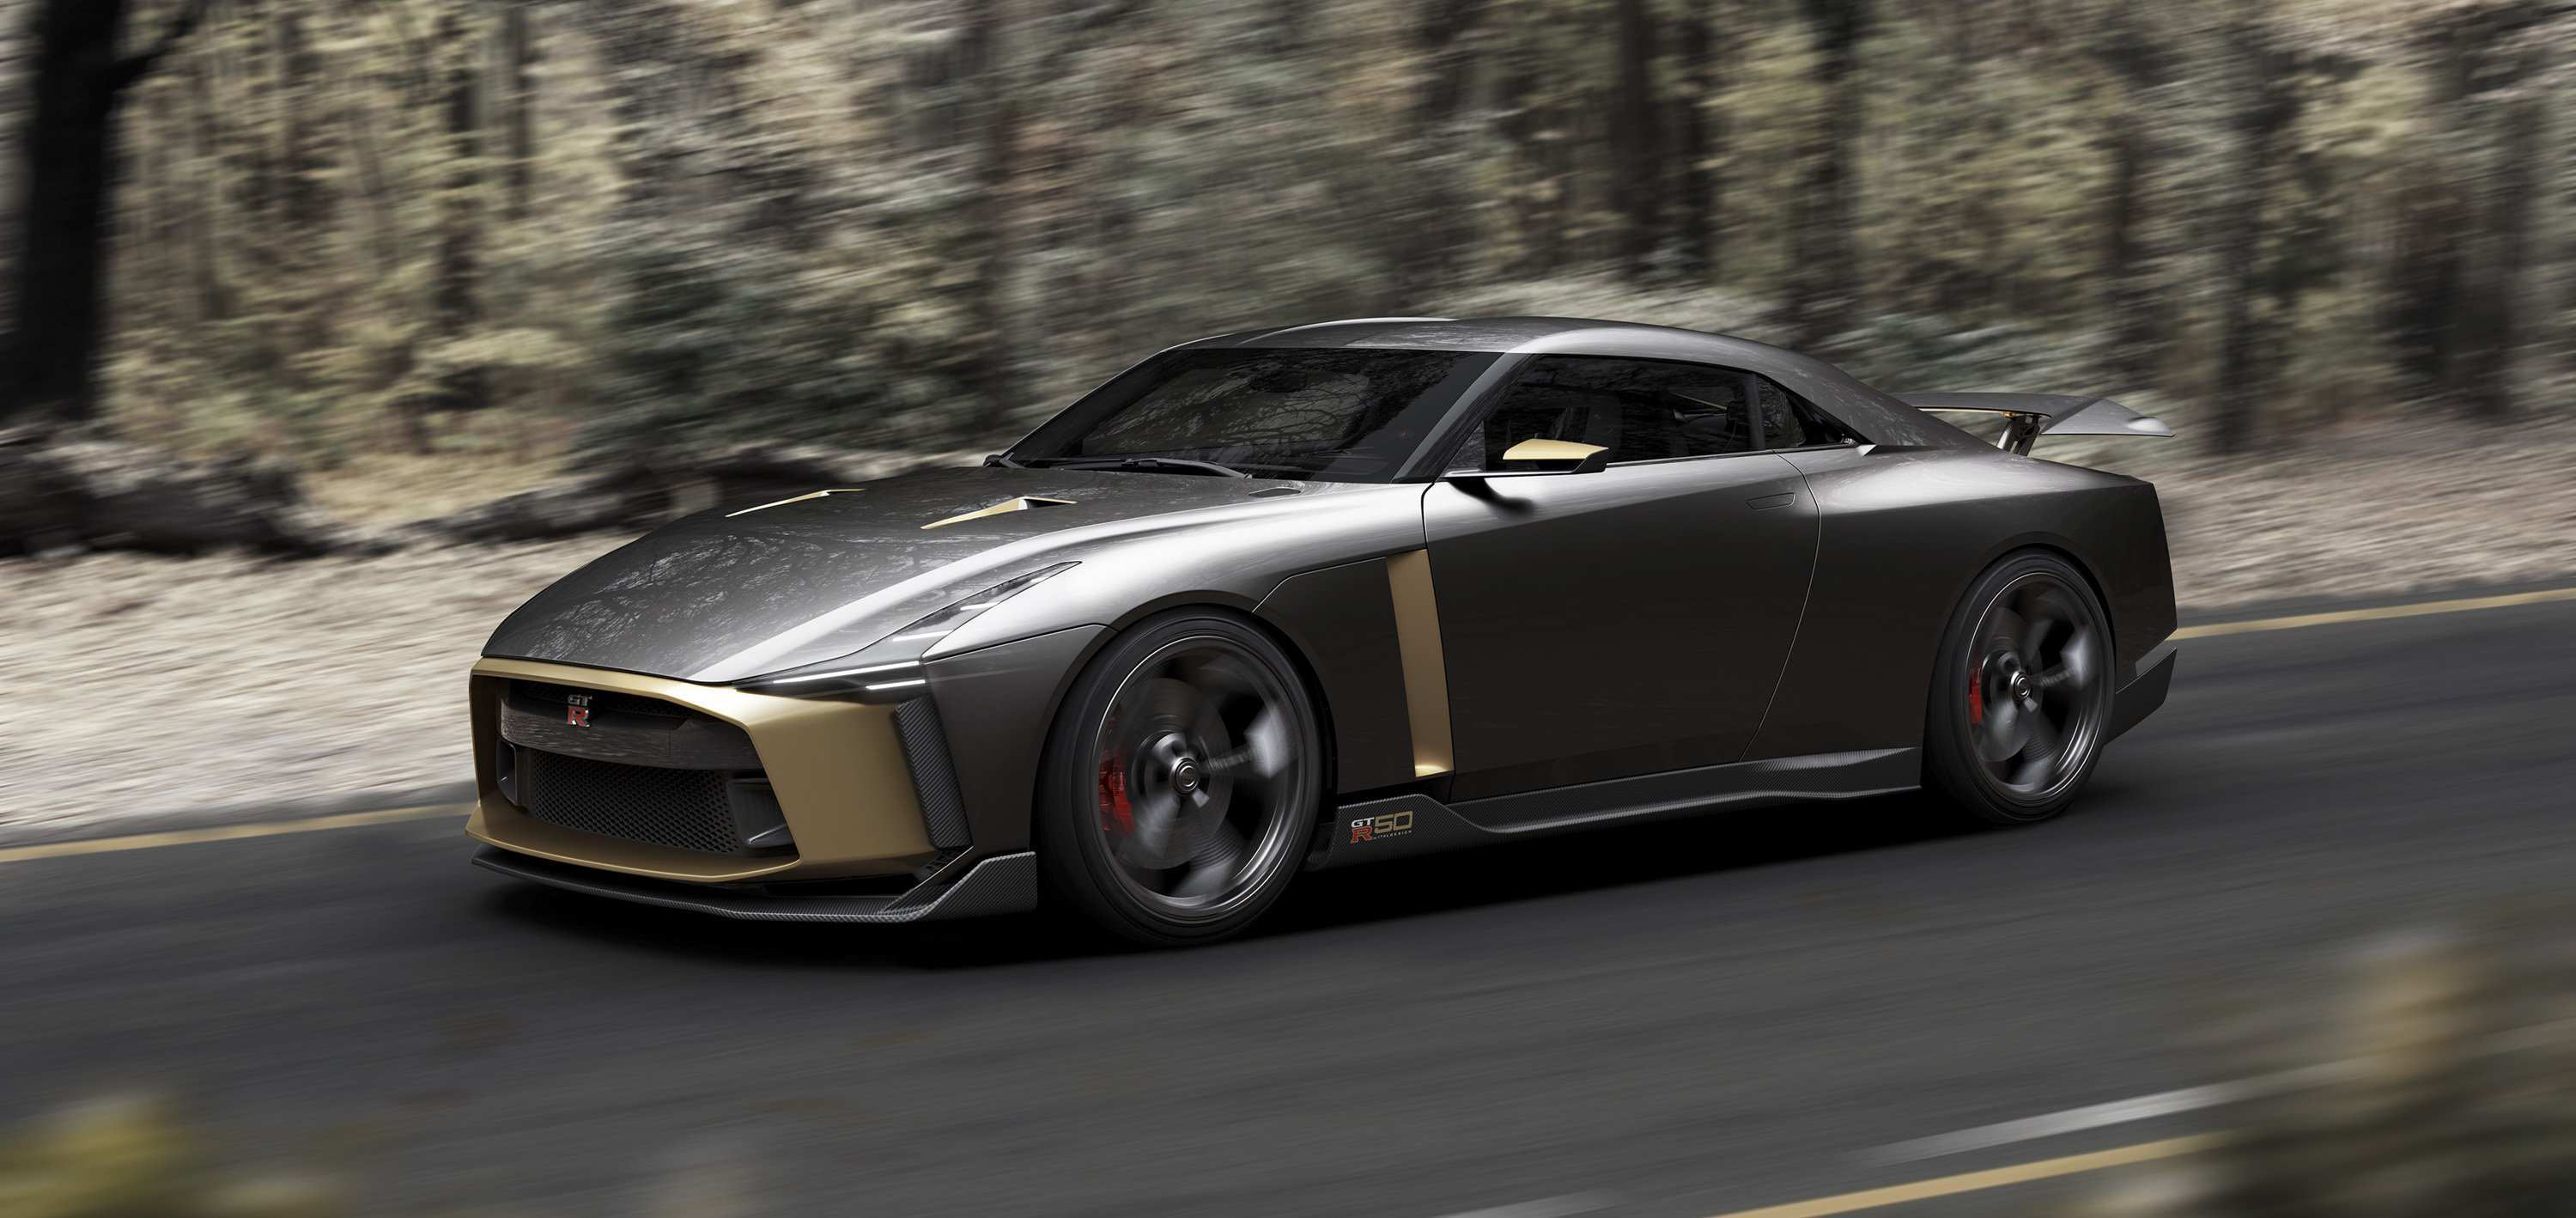 28 Best Nissan Gtr 2020 Top Speed Pricing